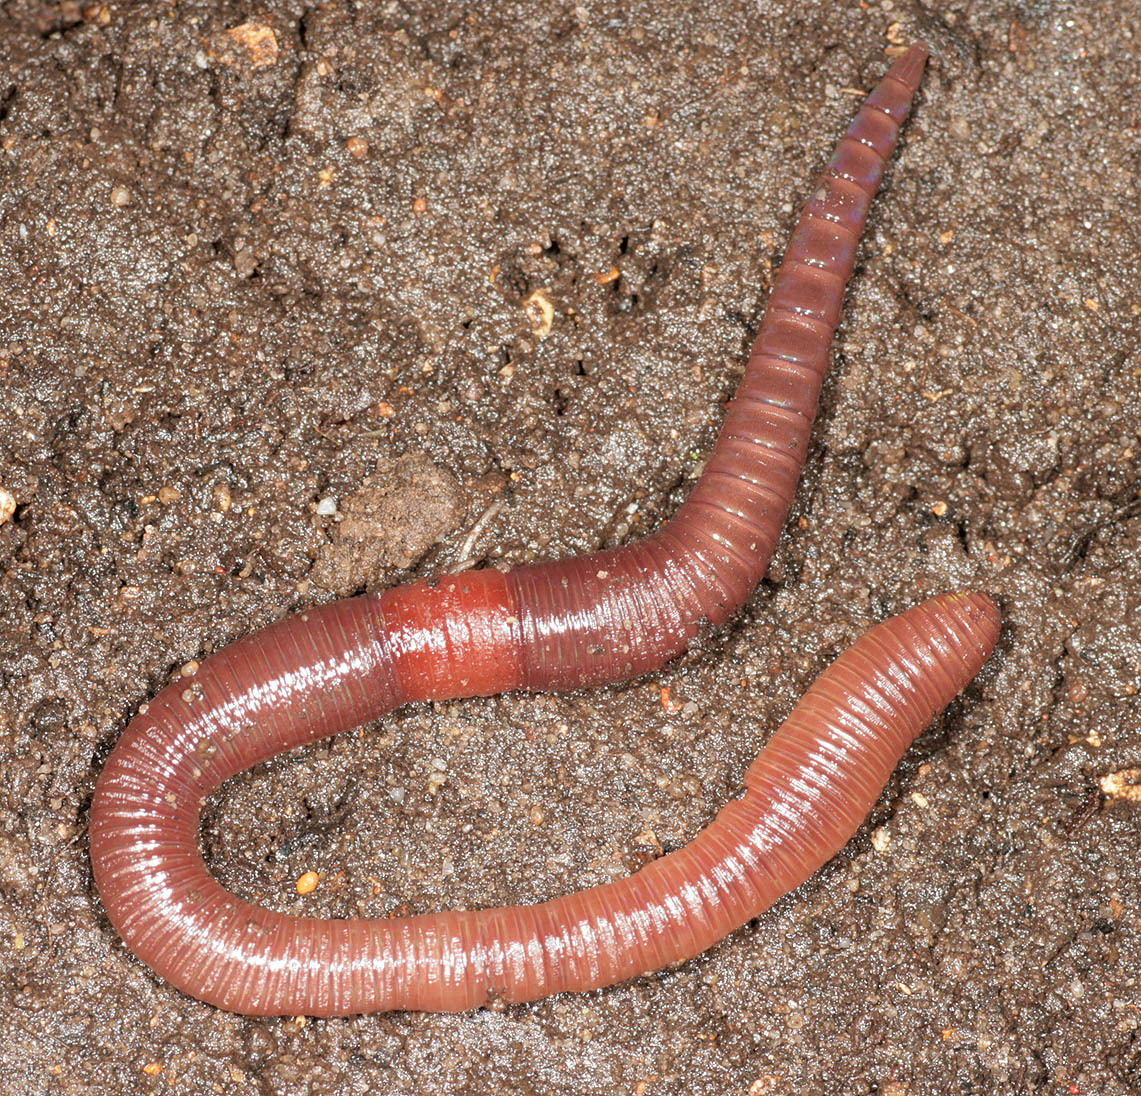 Image of red marshworms